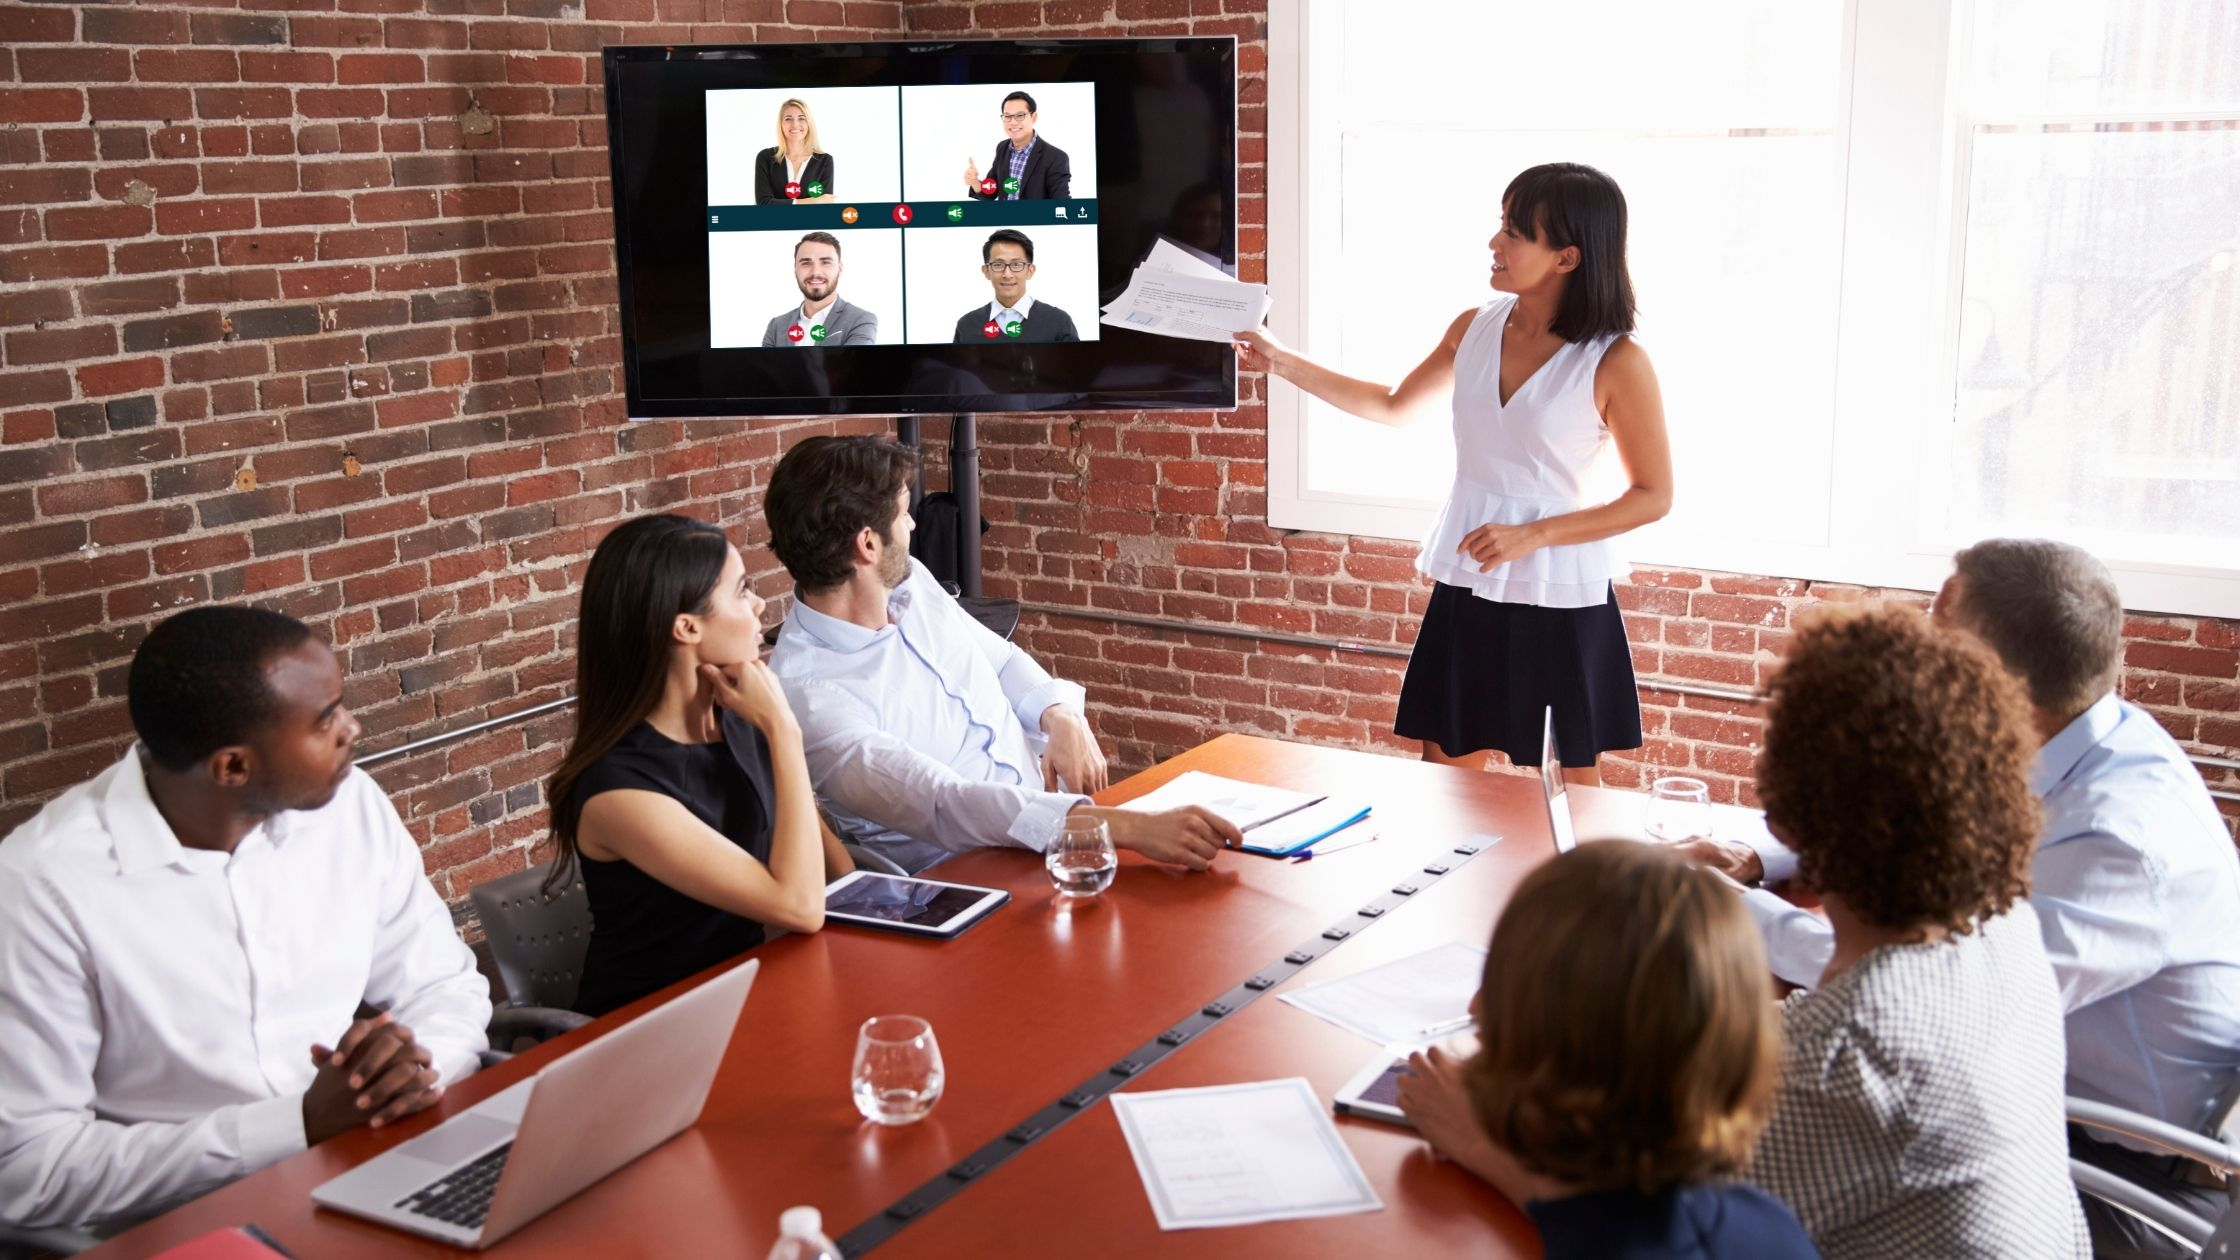 Meeting room with some folks on a screen